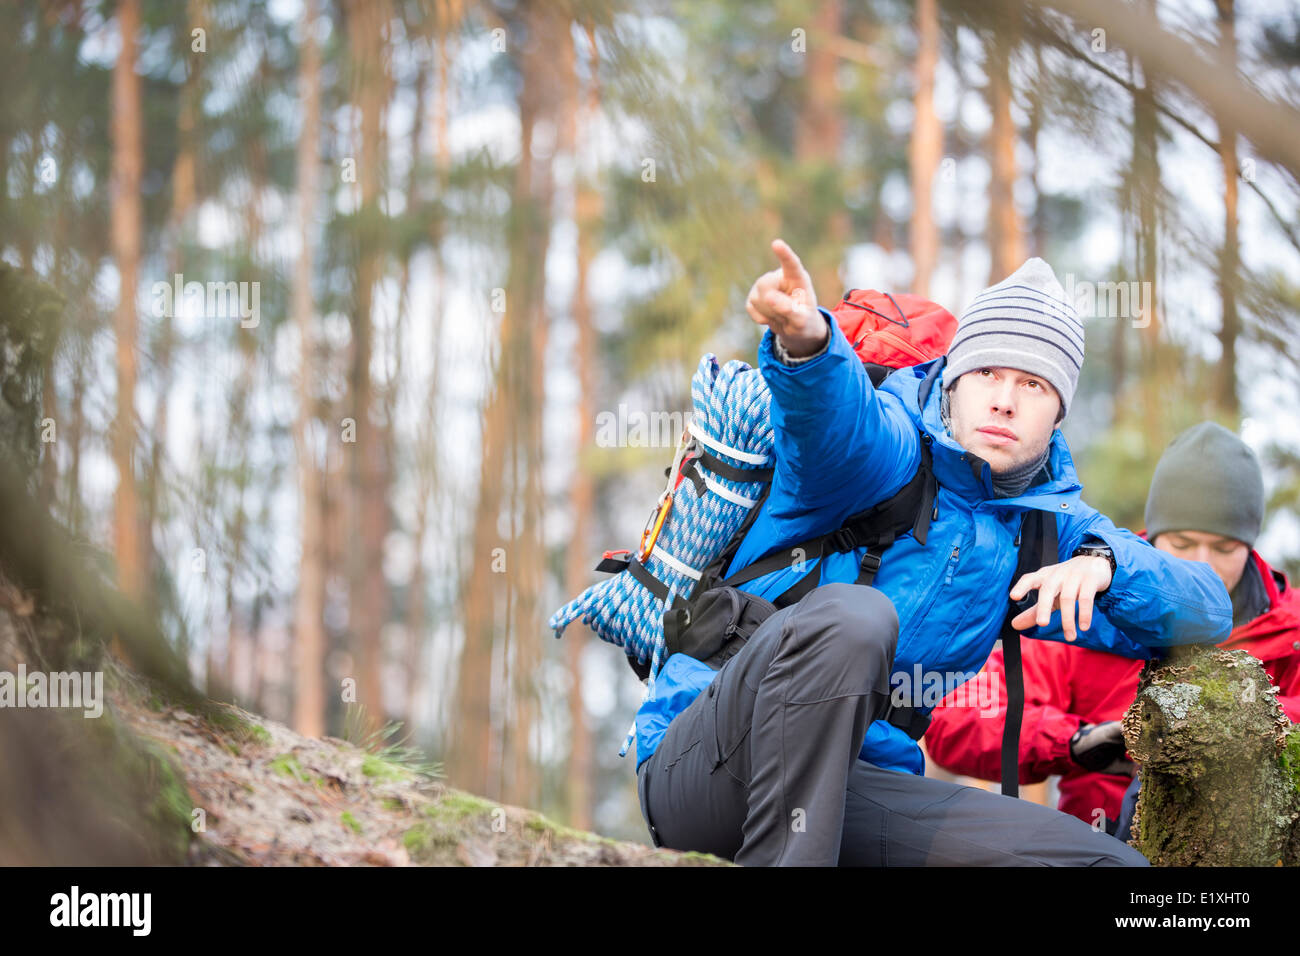 Male hiker pointing in forest - Stock Image